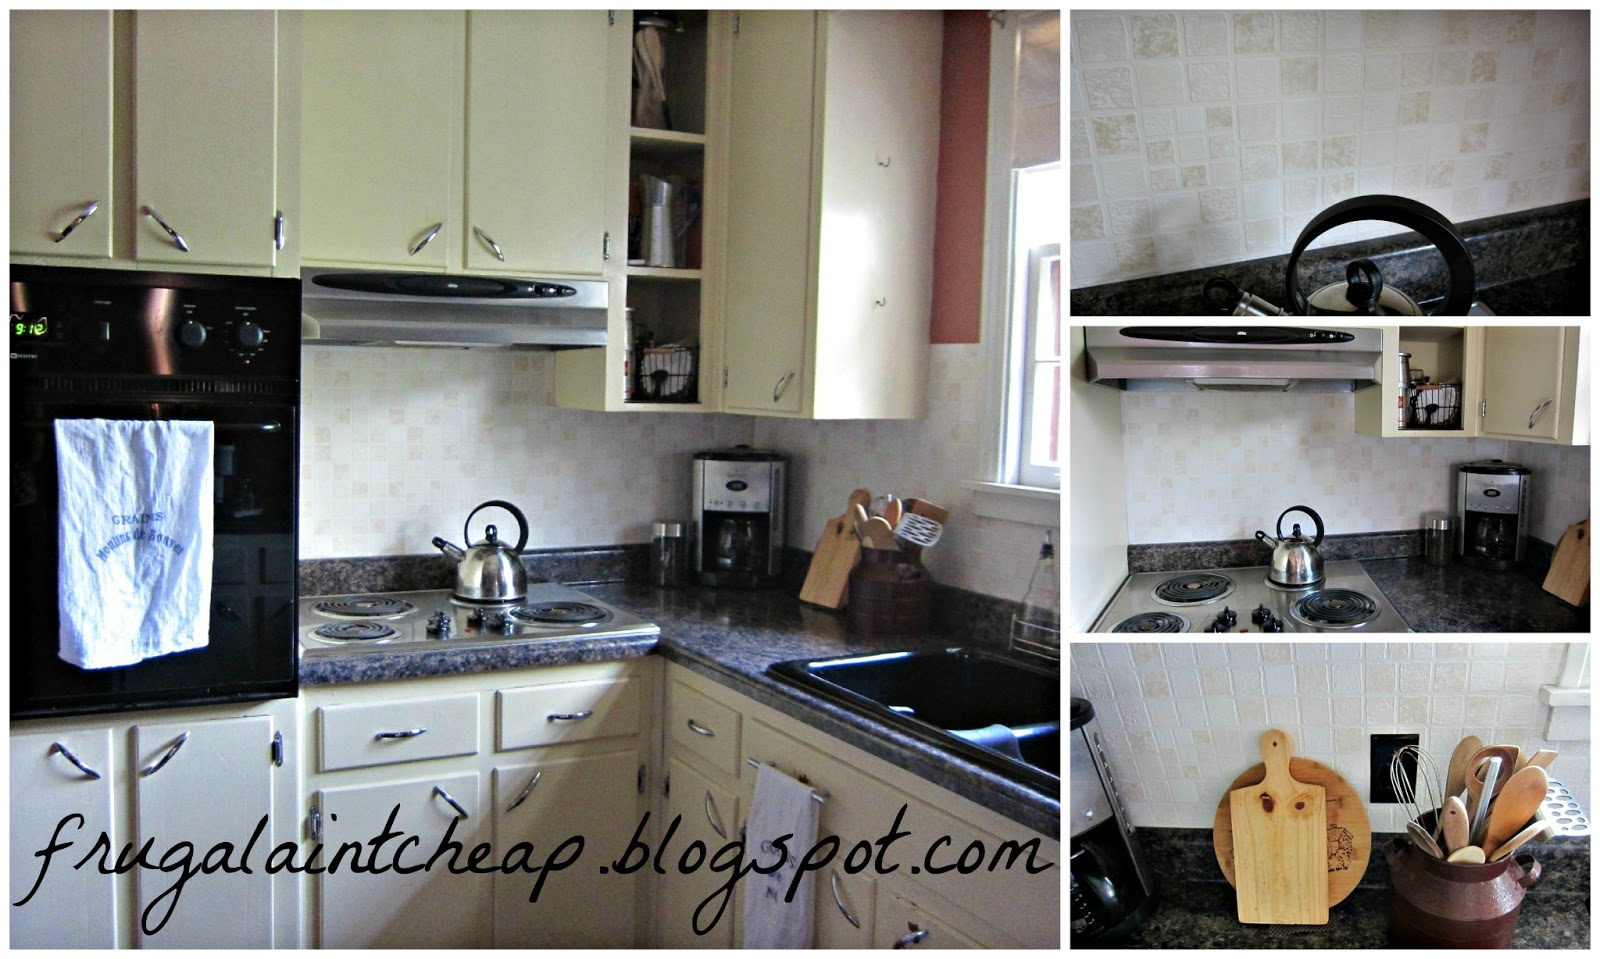 Frugal Aint Cheap Kitchen Backsplash great for renters too 1600x959